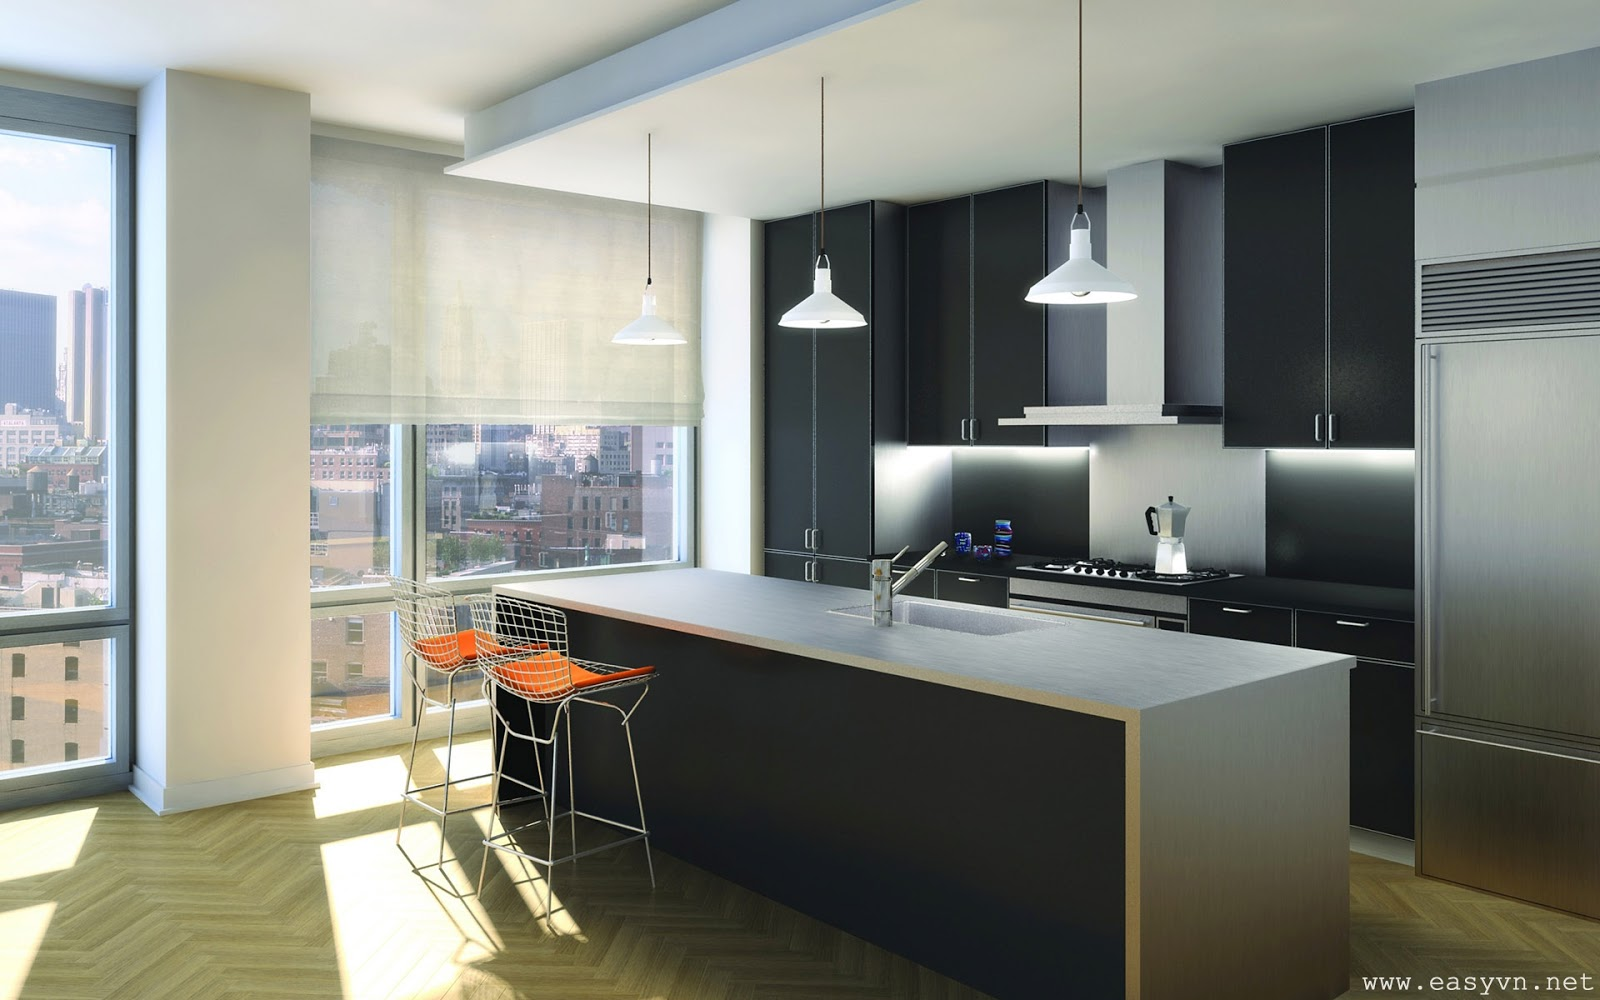 Download free beautiful kitchens wallpapers most for Kitchen wallpaper